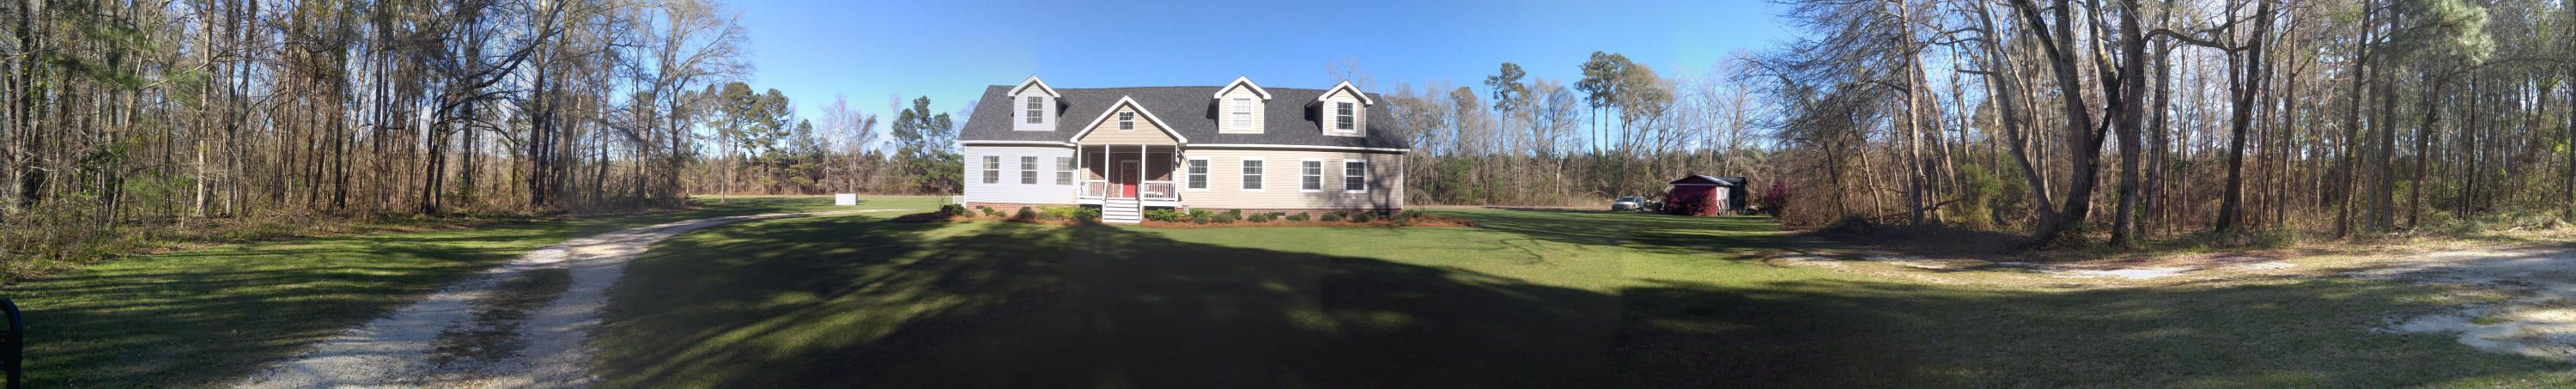 197 Polly Road Saint George, SC 29477